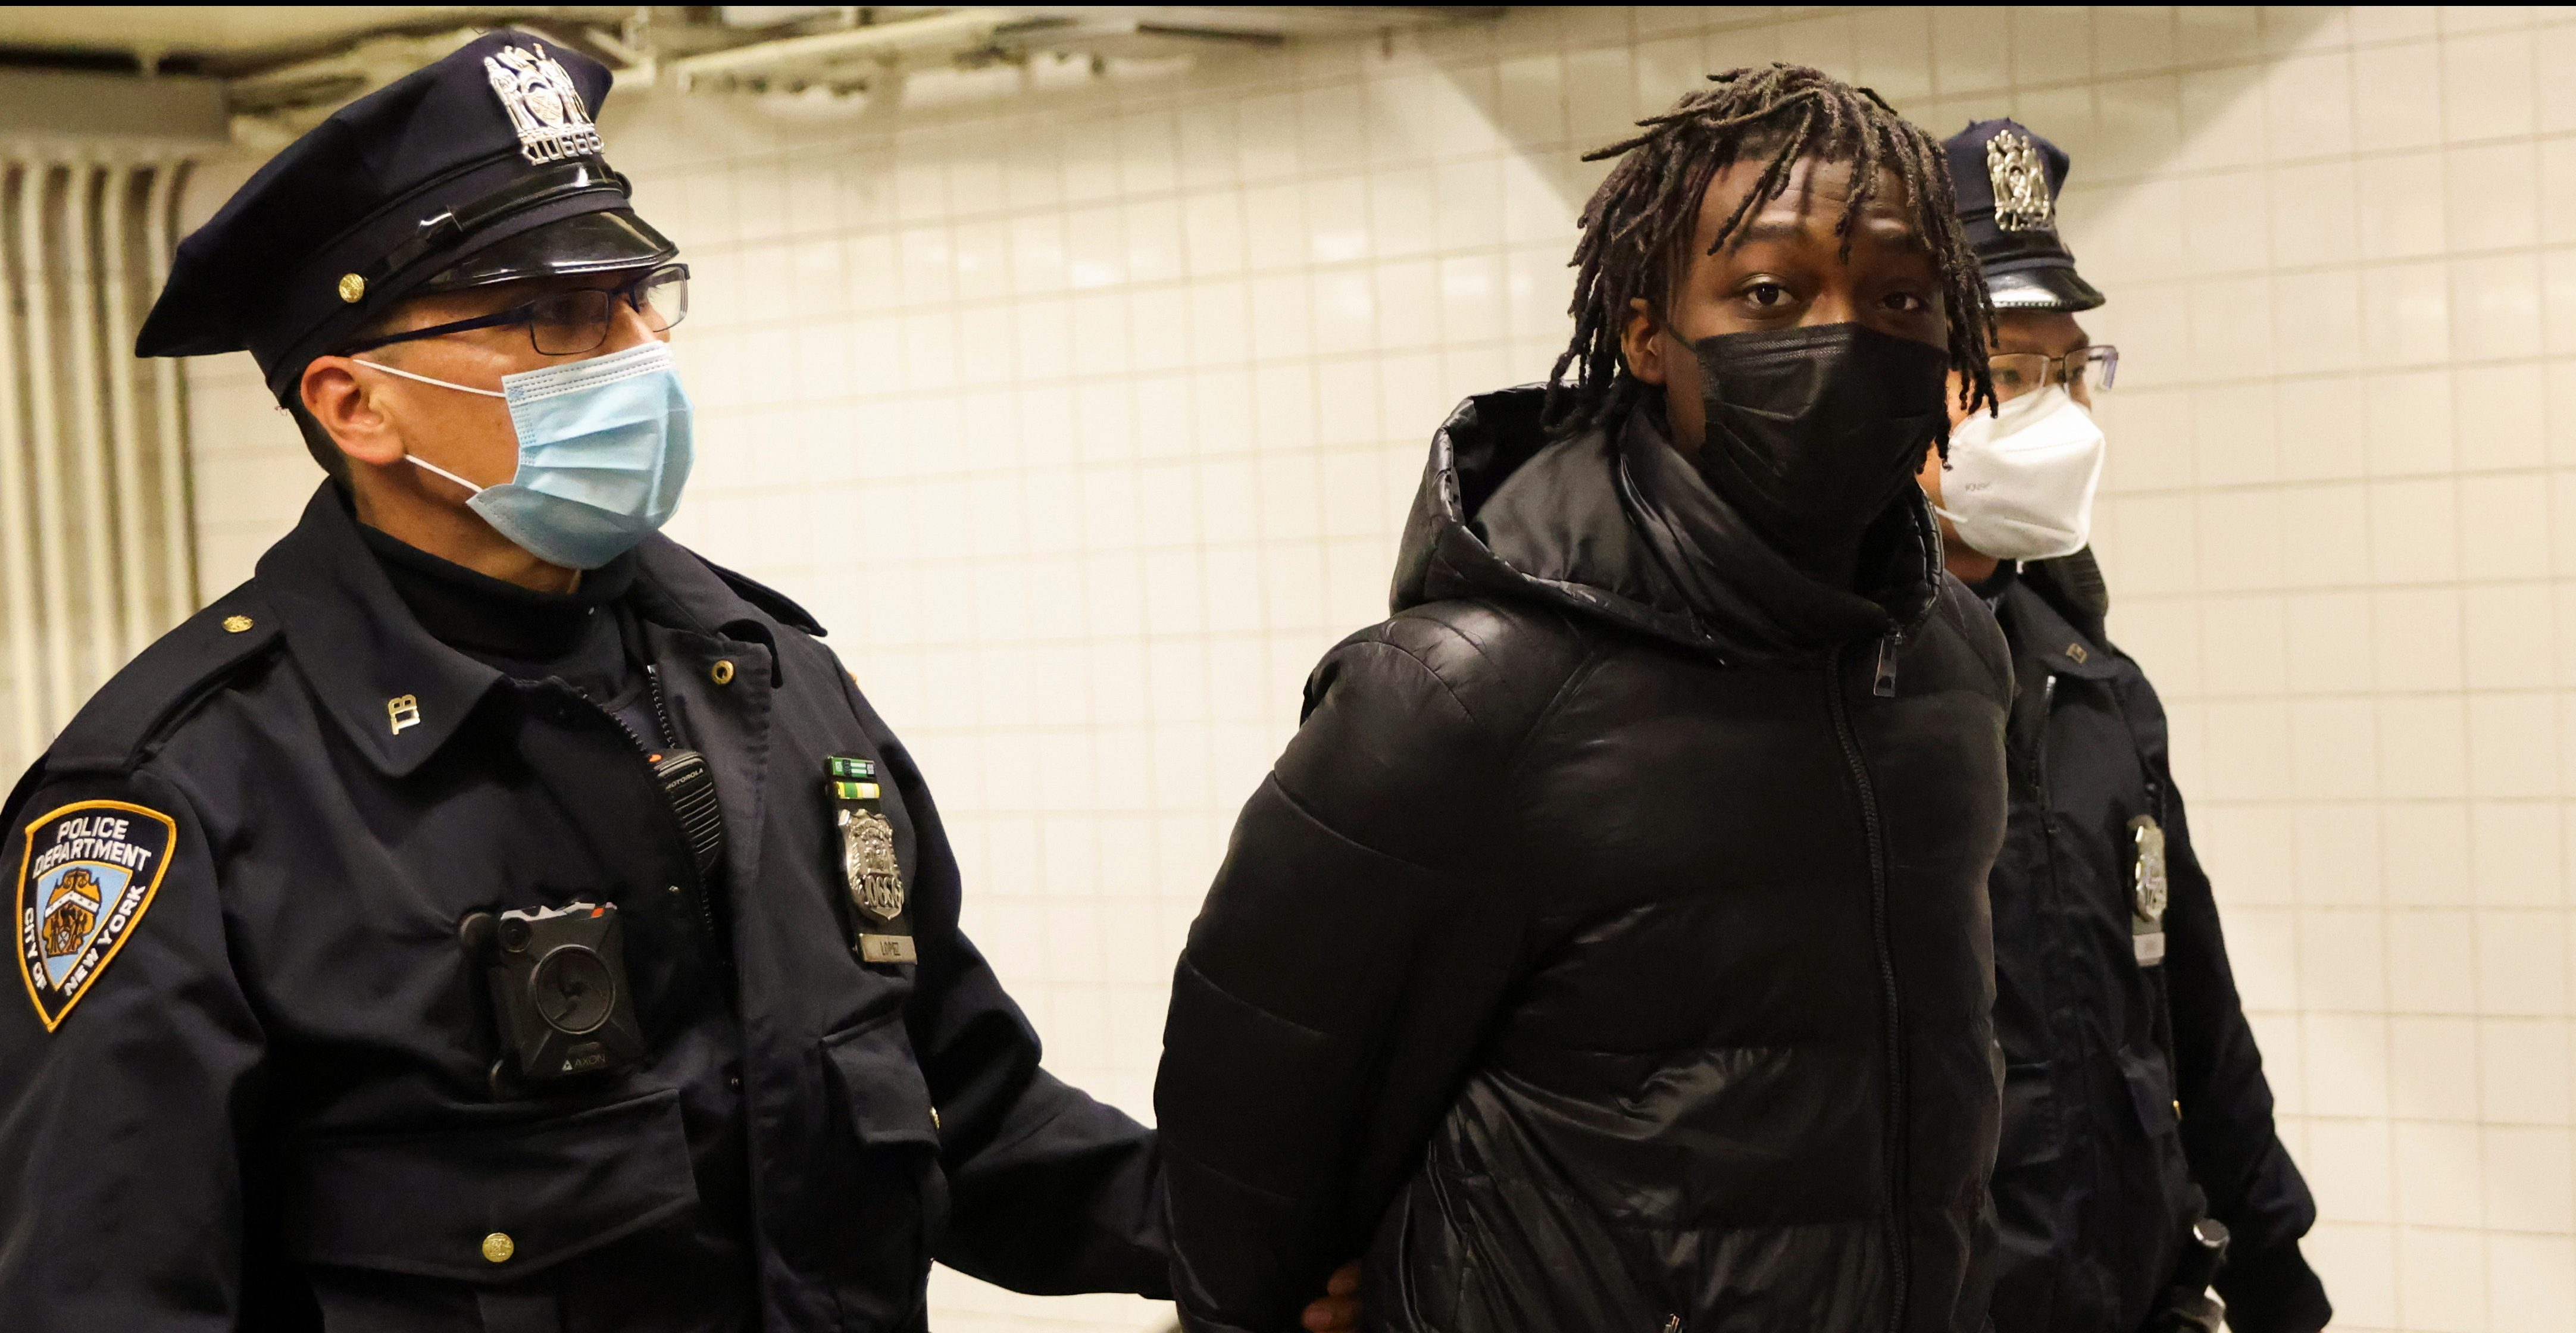 New York City Police Officers (NYPD) transport Saadiq Teague, 18, from the Columbus Circle Transit Bureau Police Station, where he was charged with two counts of criminal possession of a weapon second degree, two counts of criminal possession of a weapon in third degree; one count for the assault rifle and one for ammunition, and no one count of criminal use of drug paraphernalia after being found with an unloaded semi-automatic gun, ammunition and a gas mask outside a Times Square subway station, in New York City, U.S., April 16, 2021. REUTERS/Caitlin Ochs